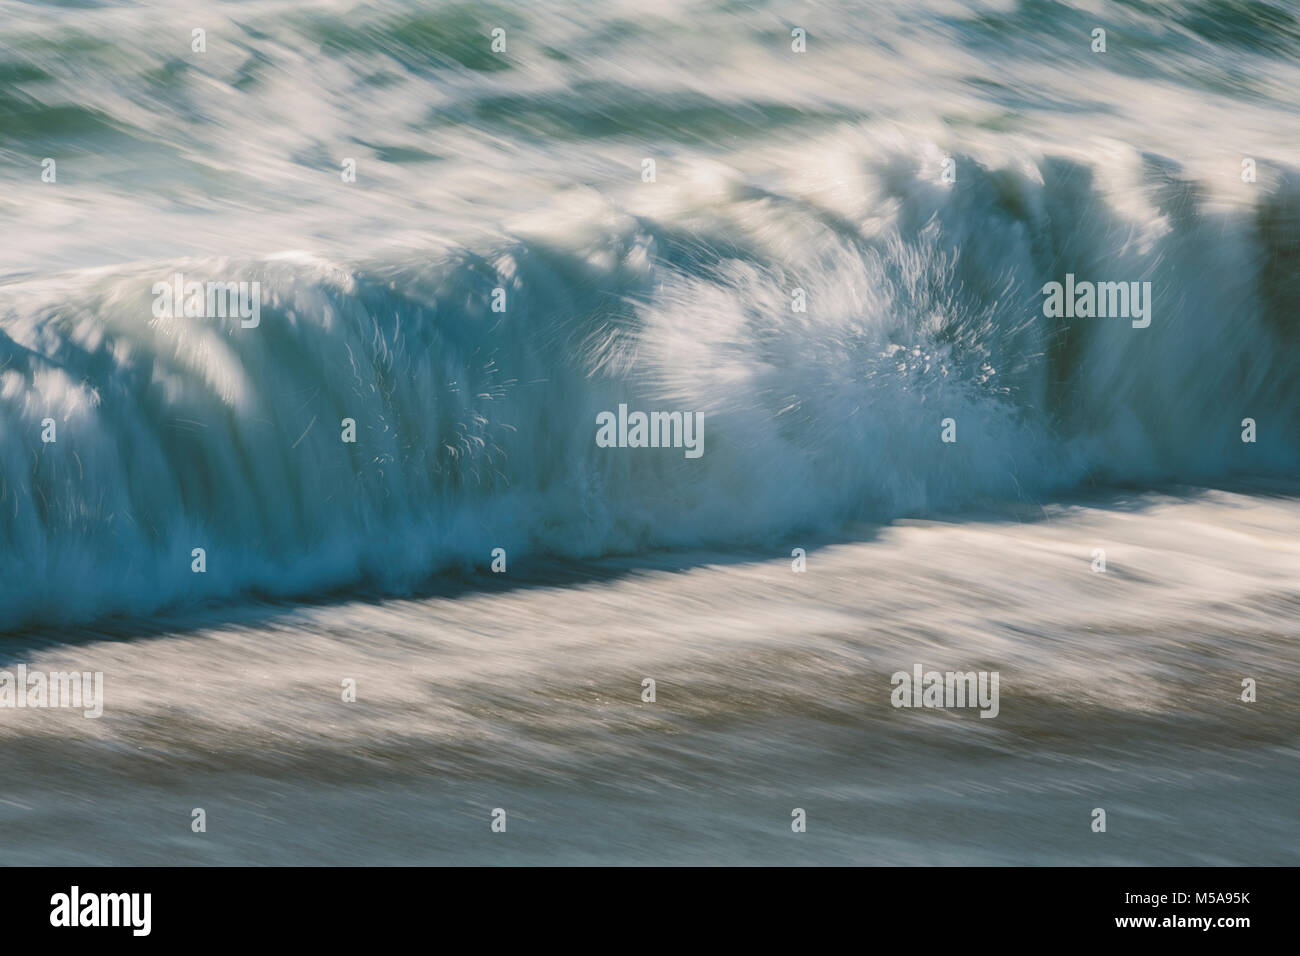 Waves crashing and breaking on the shore. - Stock Image